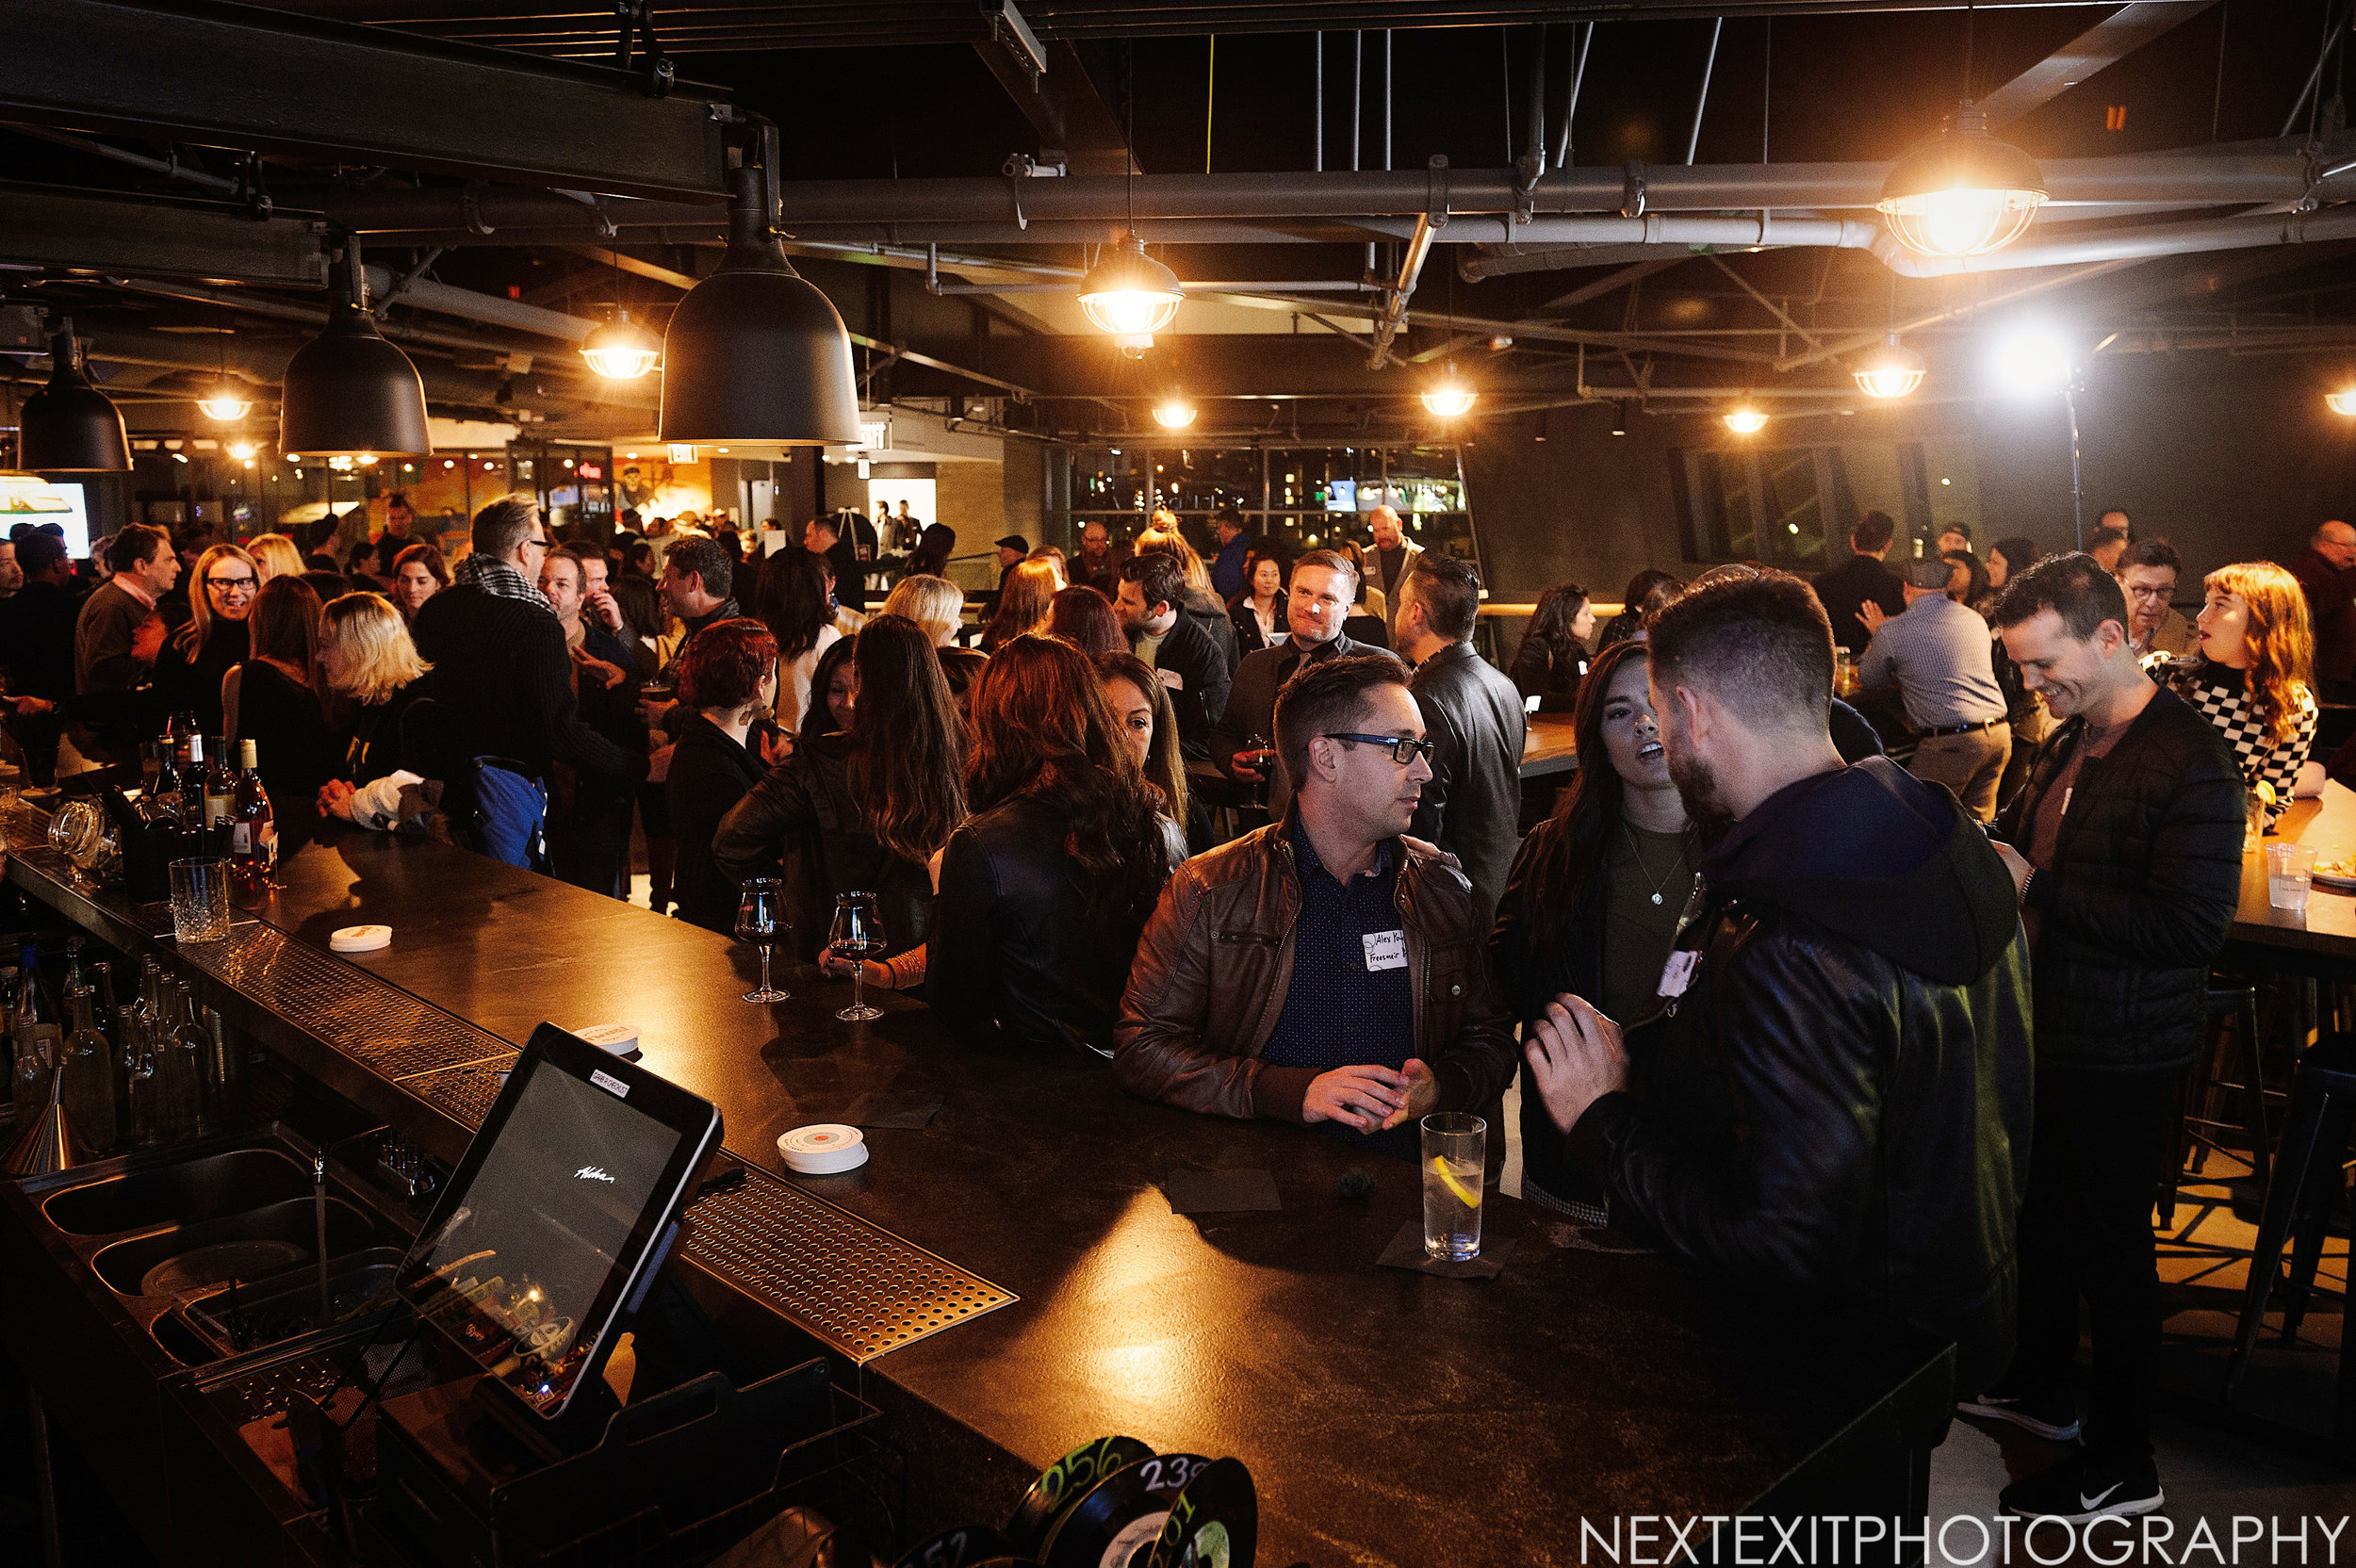 January 15, 2019 - Host: Free Play, DTLAPhotographs by NEXT EXIT PHOTOGRAPHYClick Here